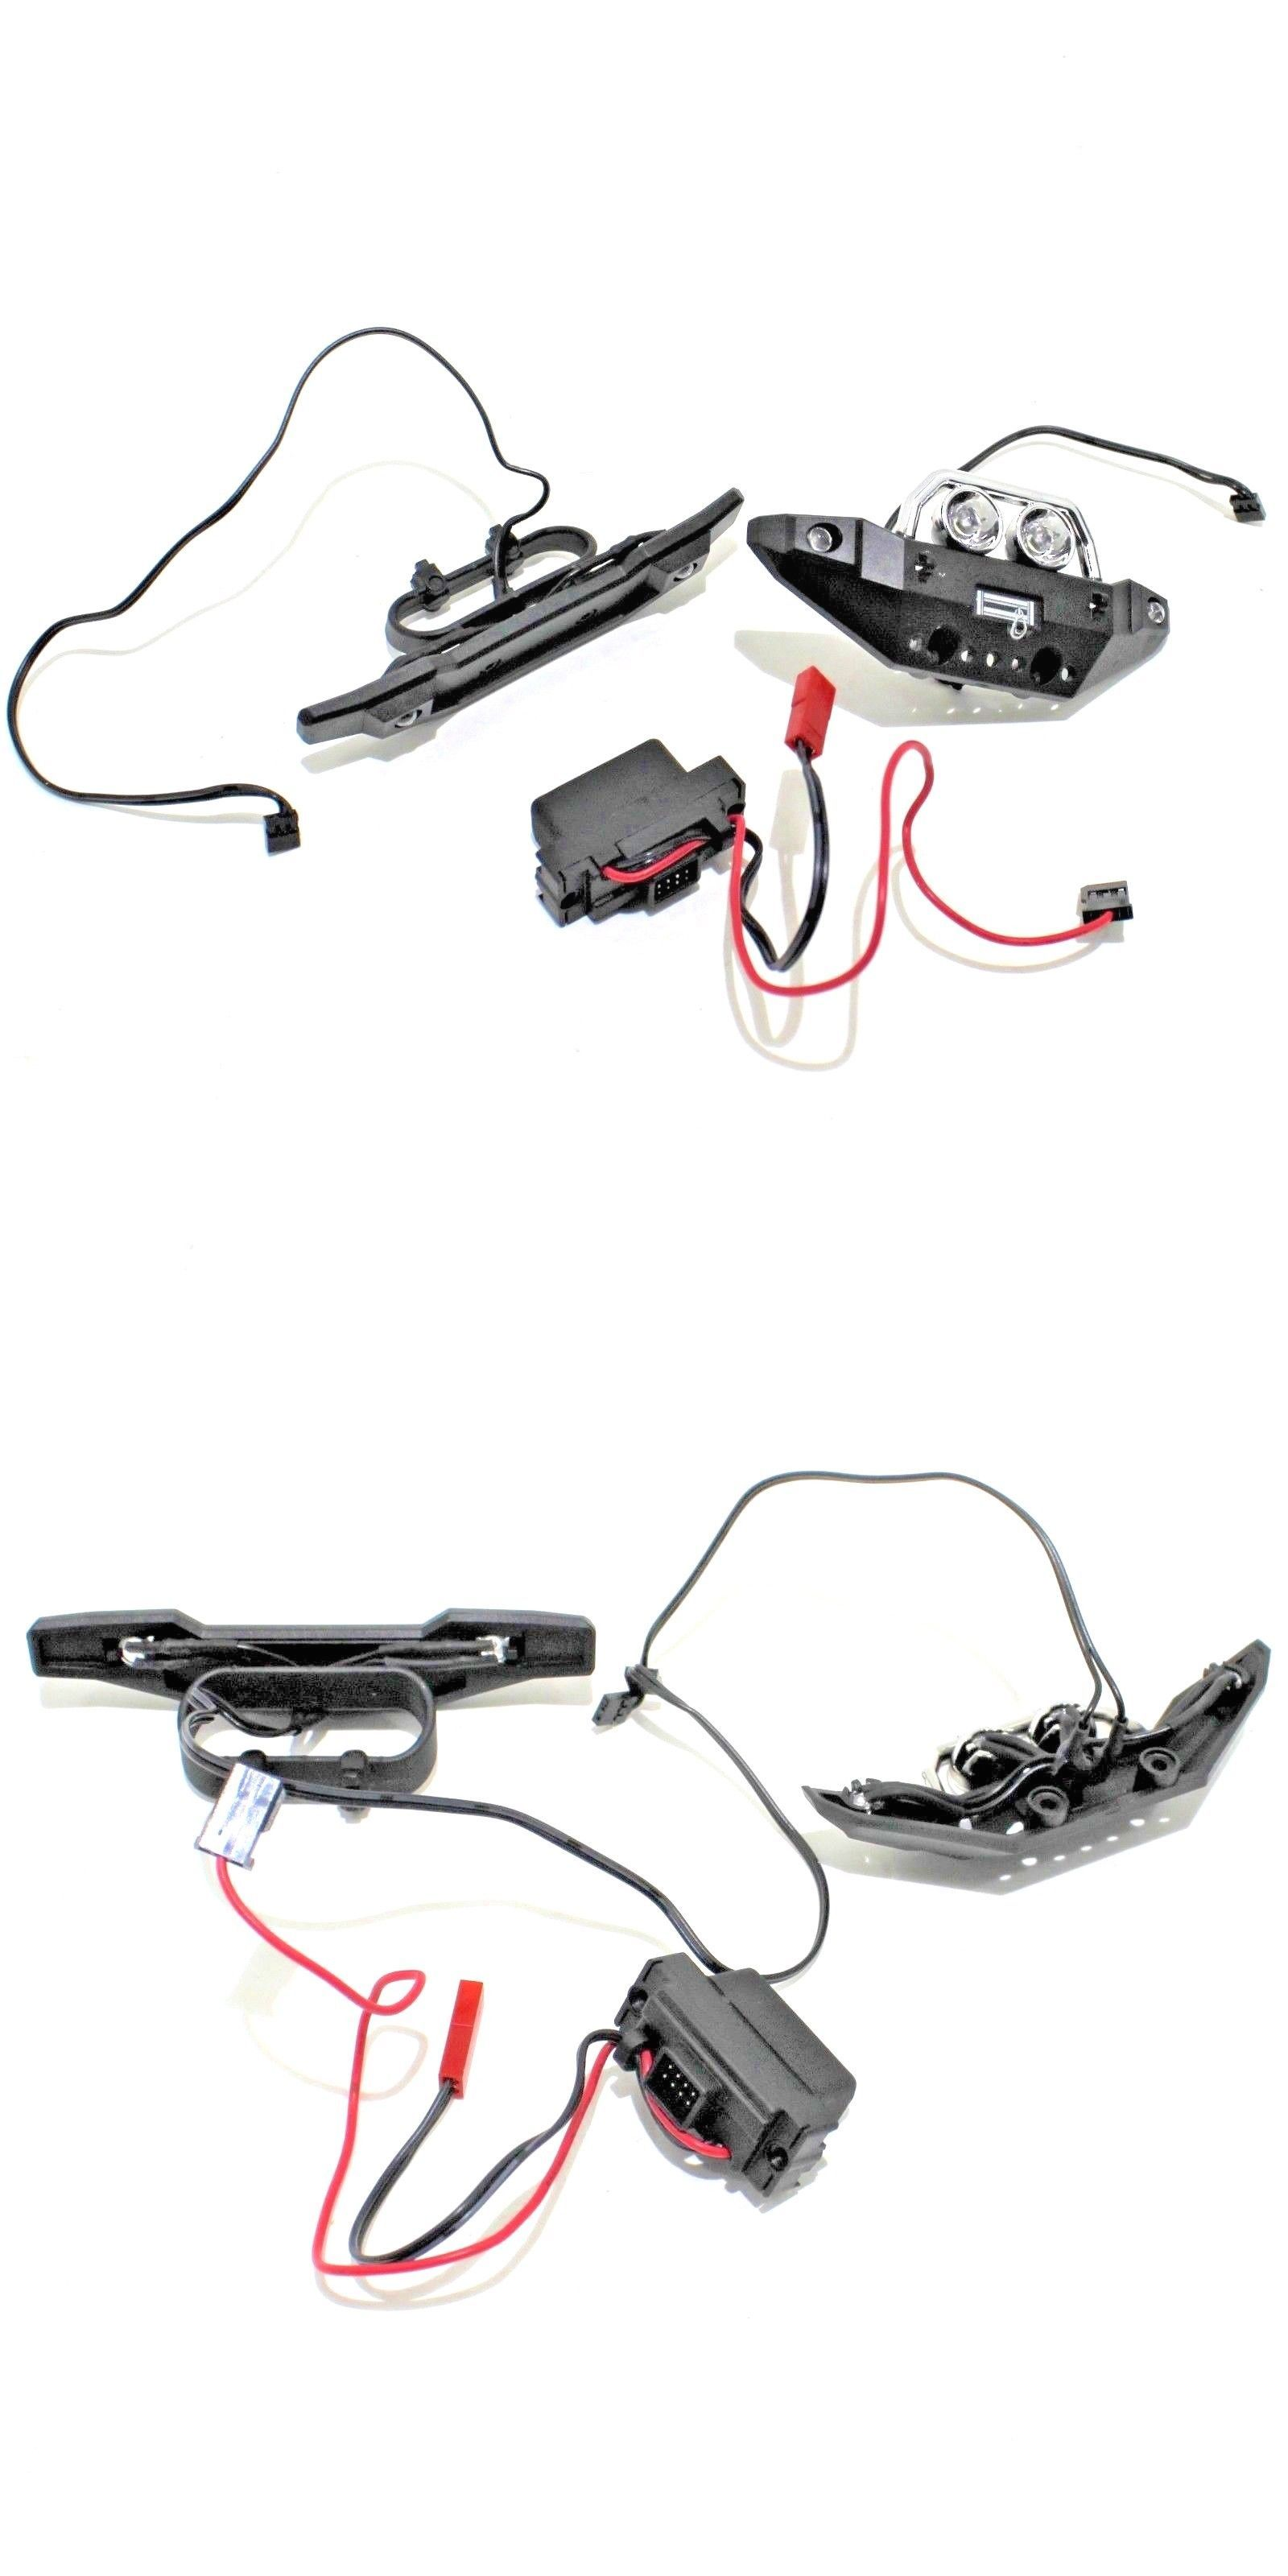 lighting and lamps 182177 traxxas summit 1 16 front rear bumpers led lights wire harness mounts wiring box buy it now only 26 99 on ebay  [ 1600 x 3200 Pixel ]